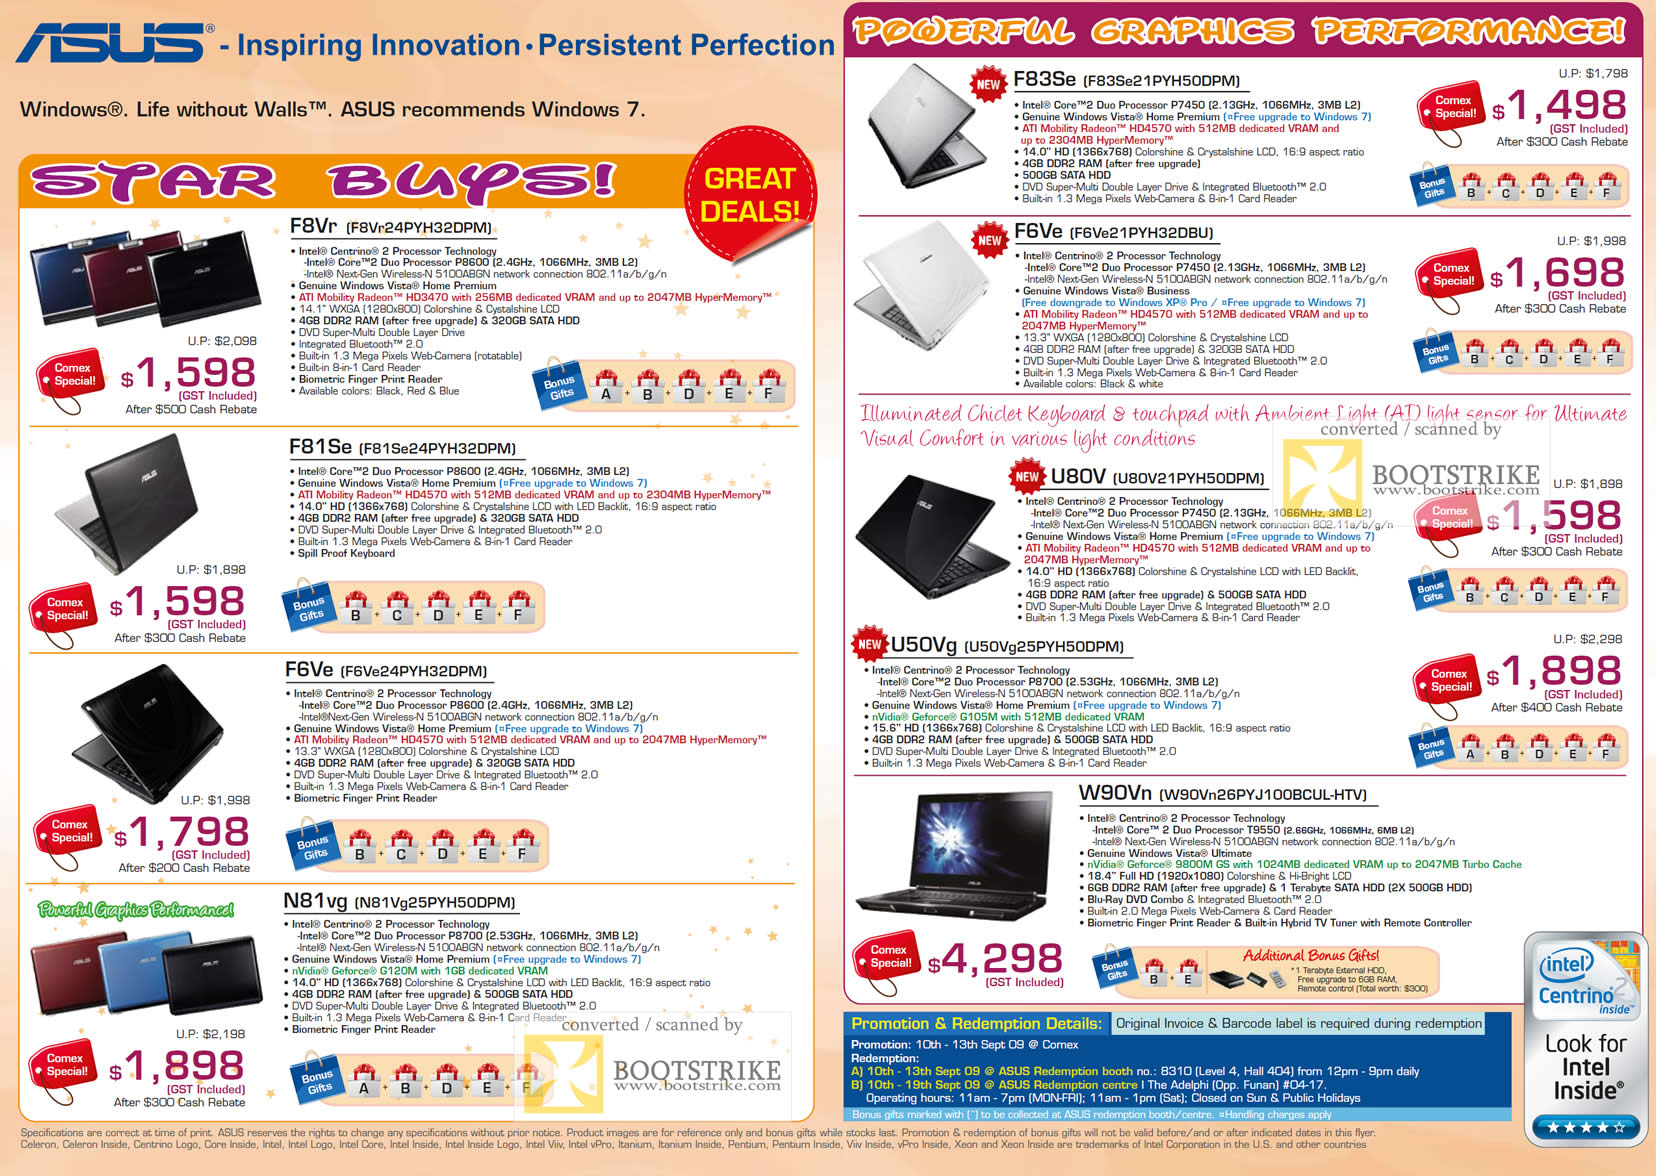 Comex 2009 price list image brochure of ASUS Notebooks F8Vr F81Se F6Ve N81vg F83Se U80V U50Vg W90Vn